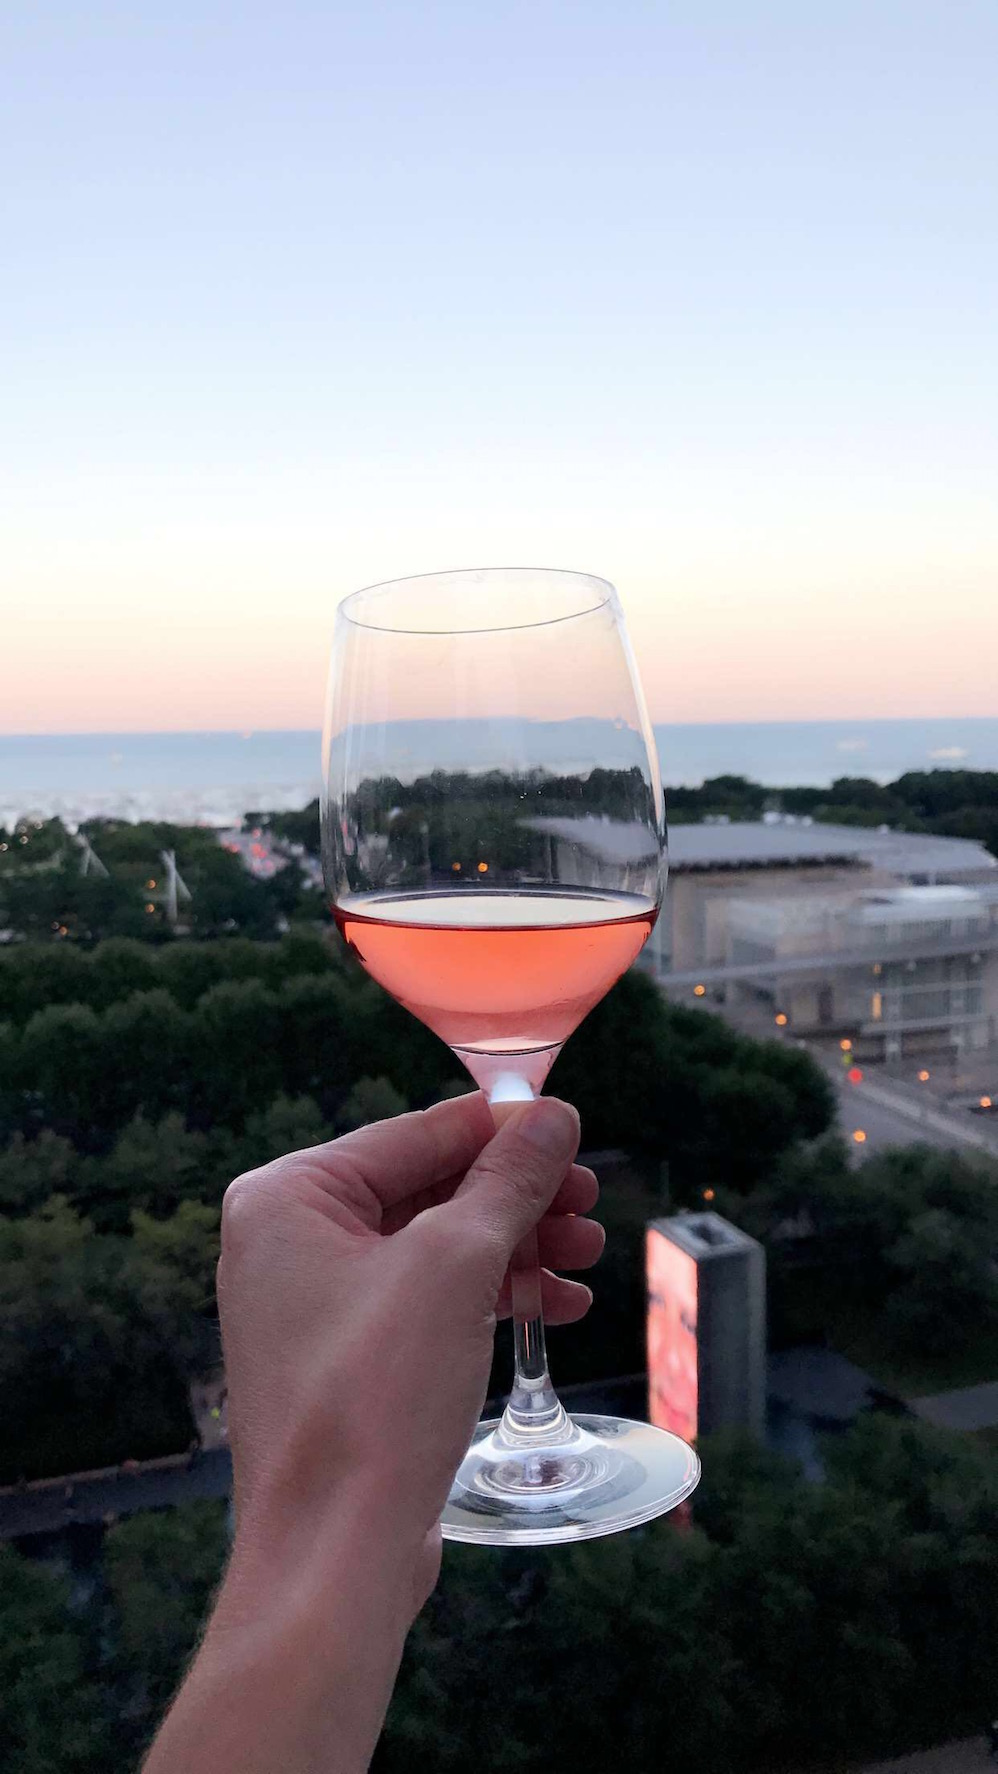 rosé all day (and night)